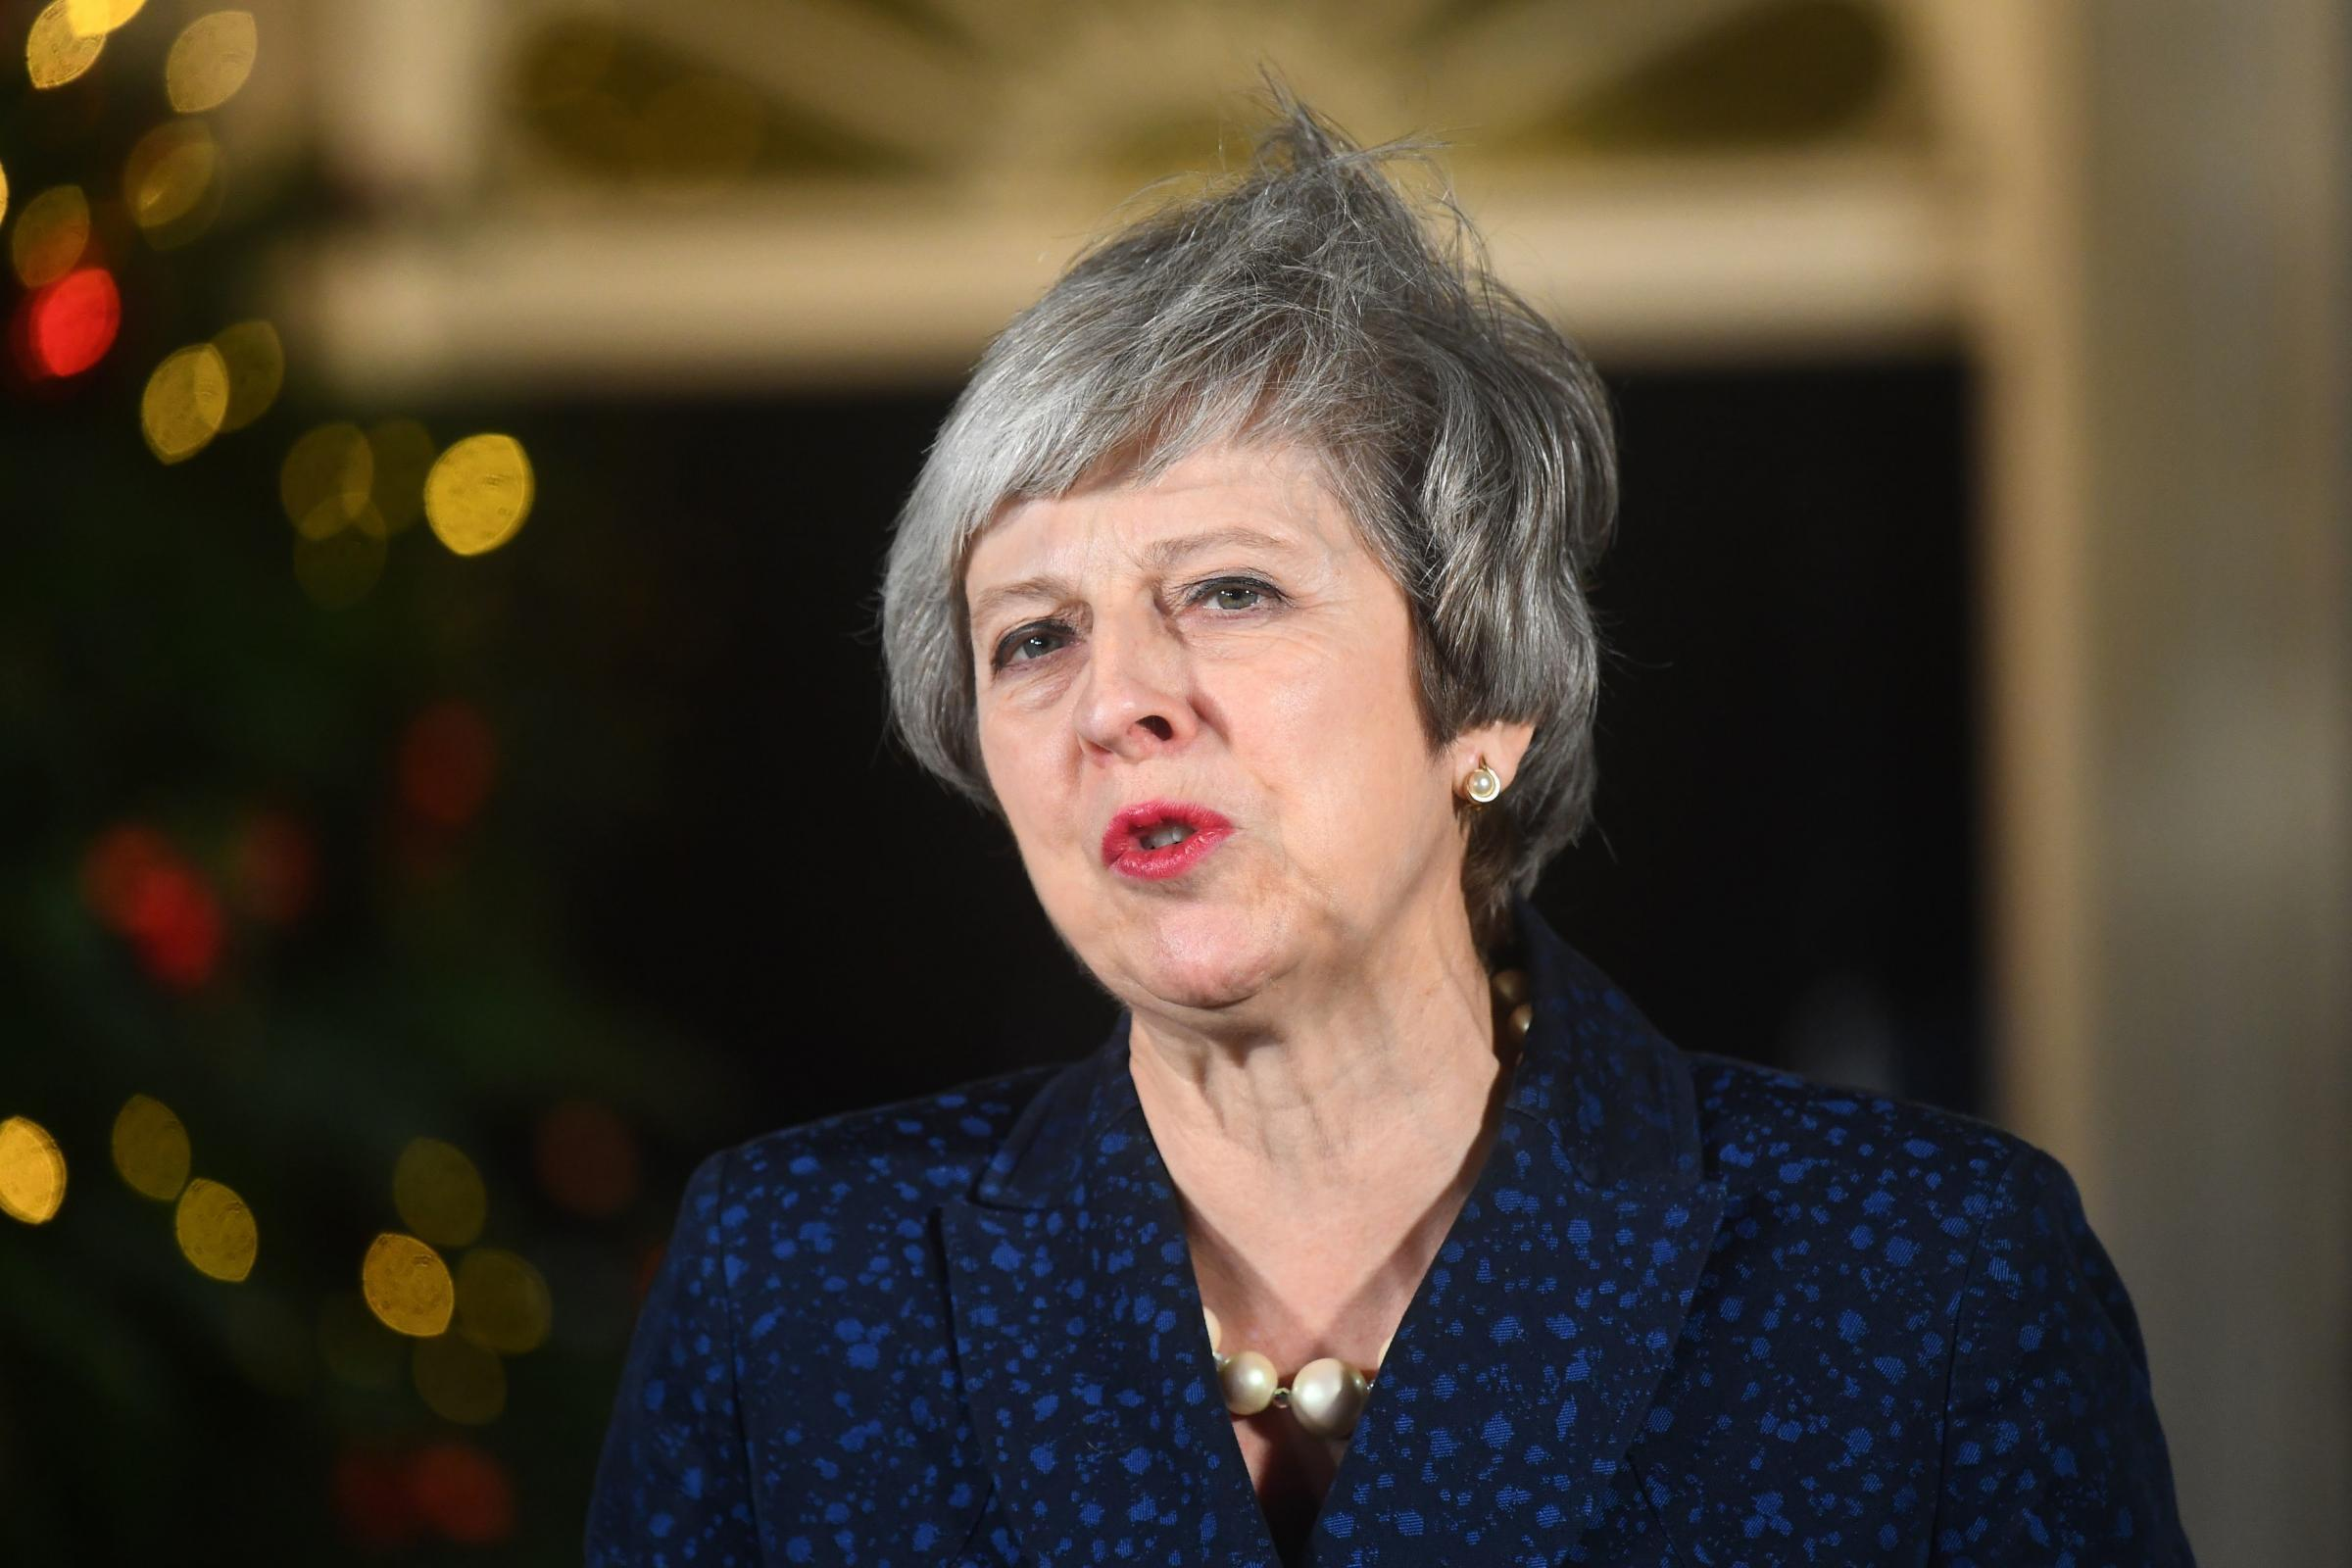 Prime Minister Theresa May makes a statement in 10 Downing Street, London, after she survived an attempt by Tory MPs to oust her with a vote of no confidence. Picture: PA